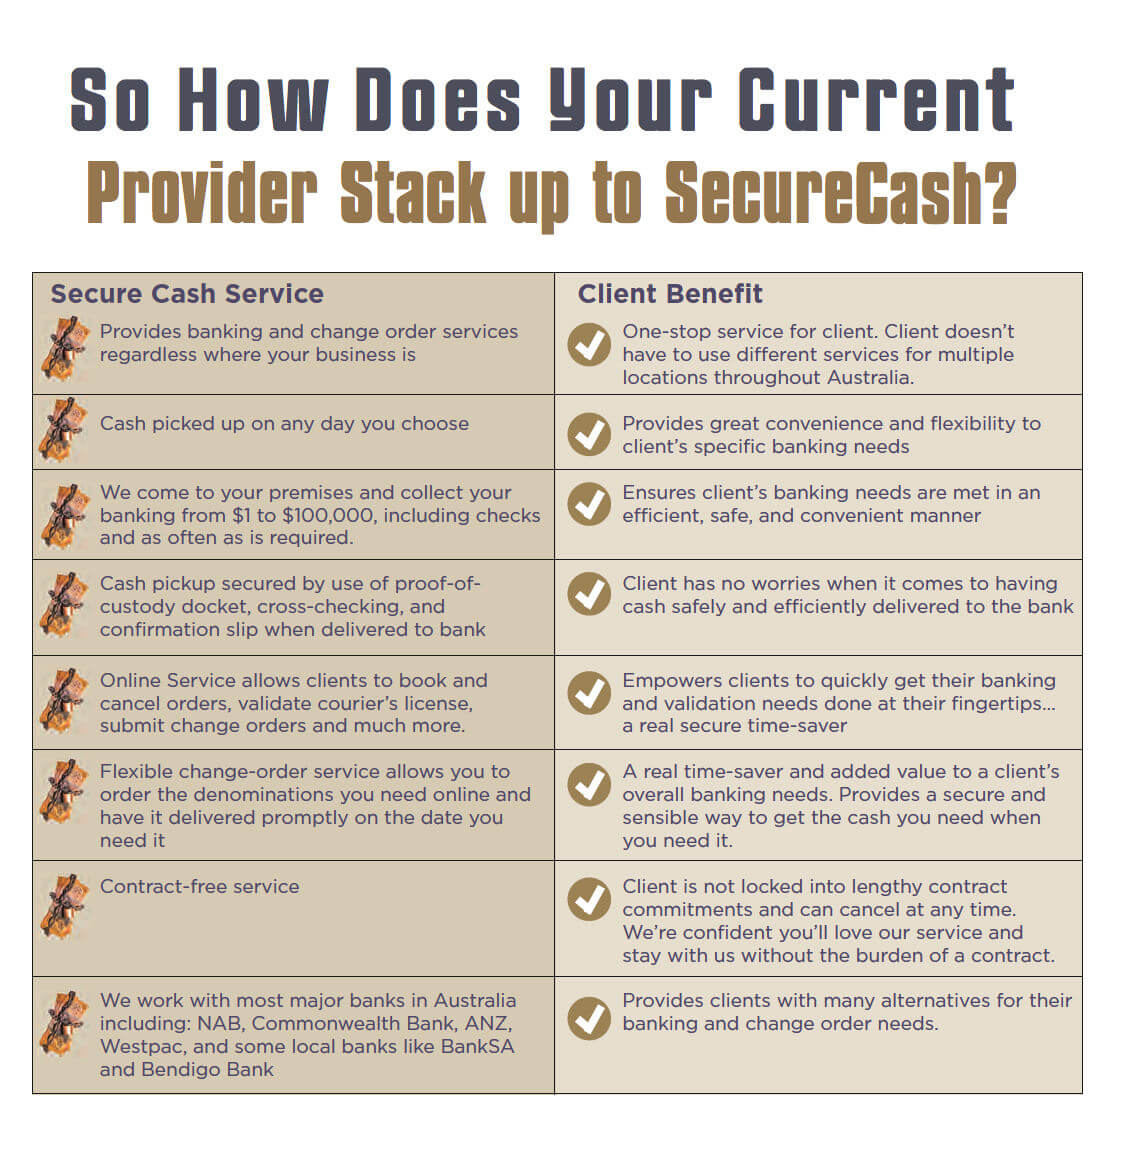 SecureCash Benefits | #1 Reliable Australia Cash Pickup Service Provider